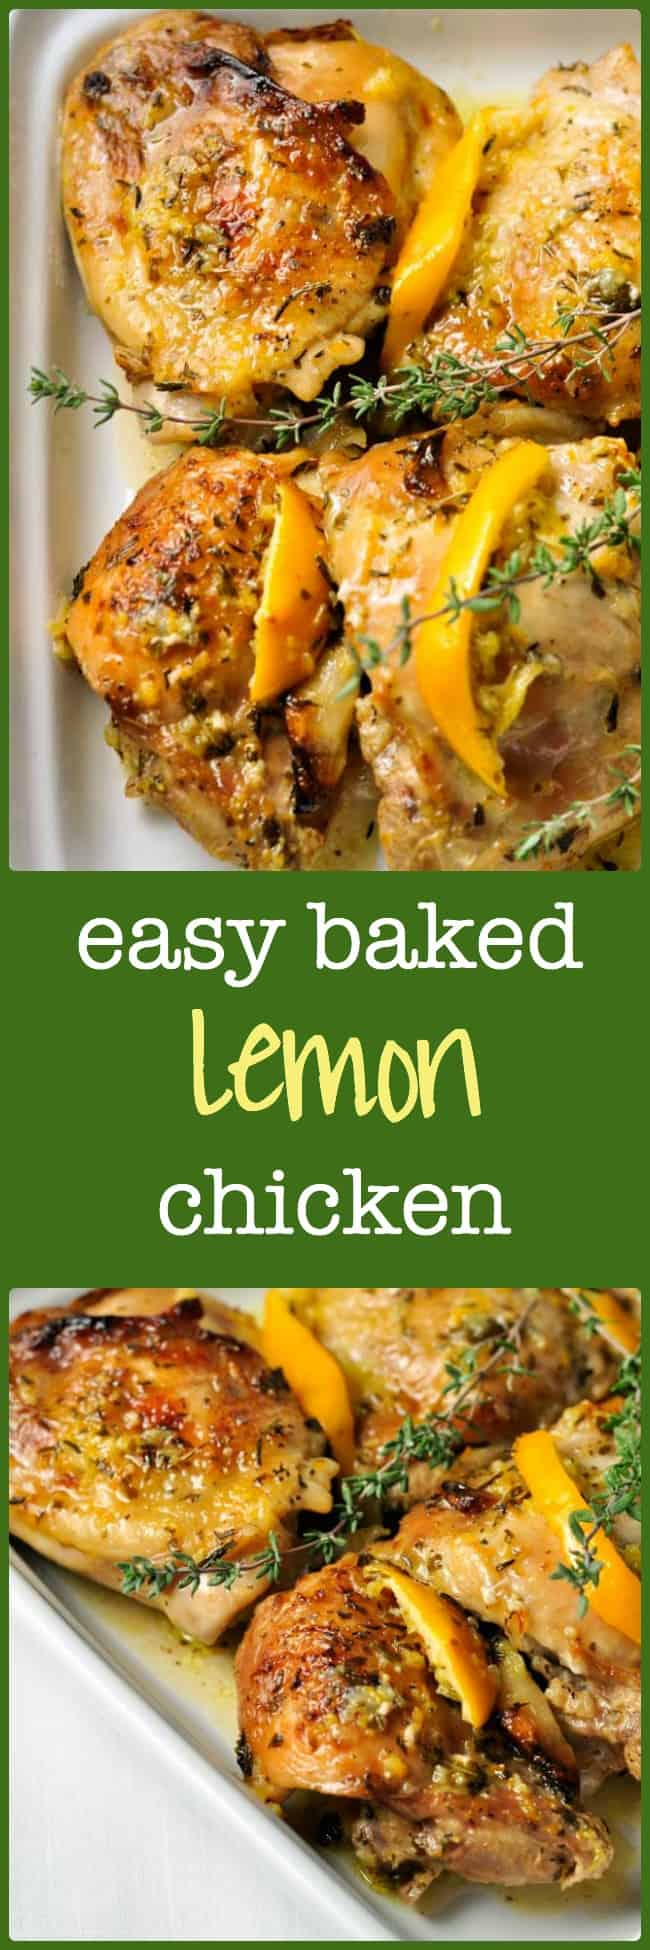 Easy Baked Lemon Chicken. Succulent juicy chicken, baked in the oven. Easiest recipe ever!